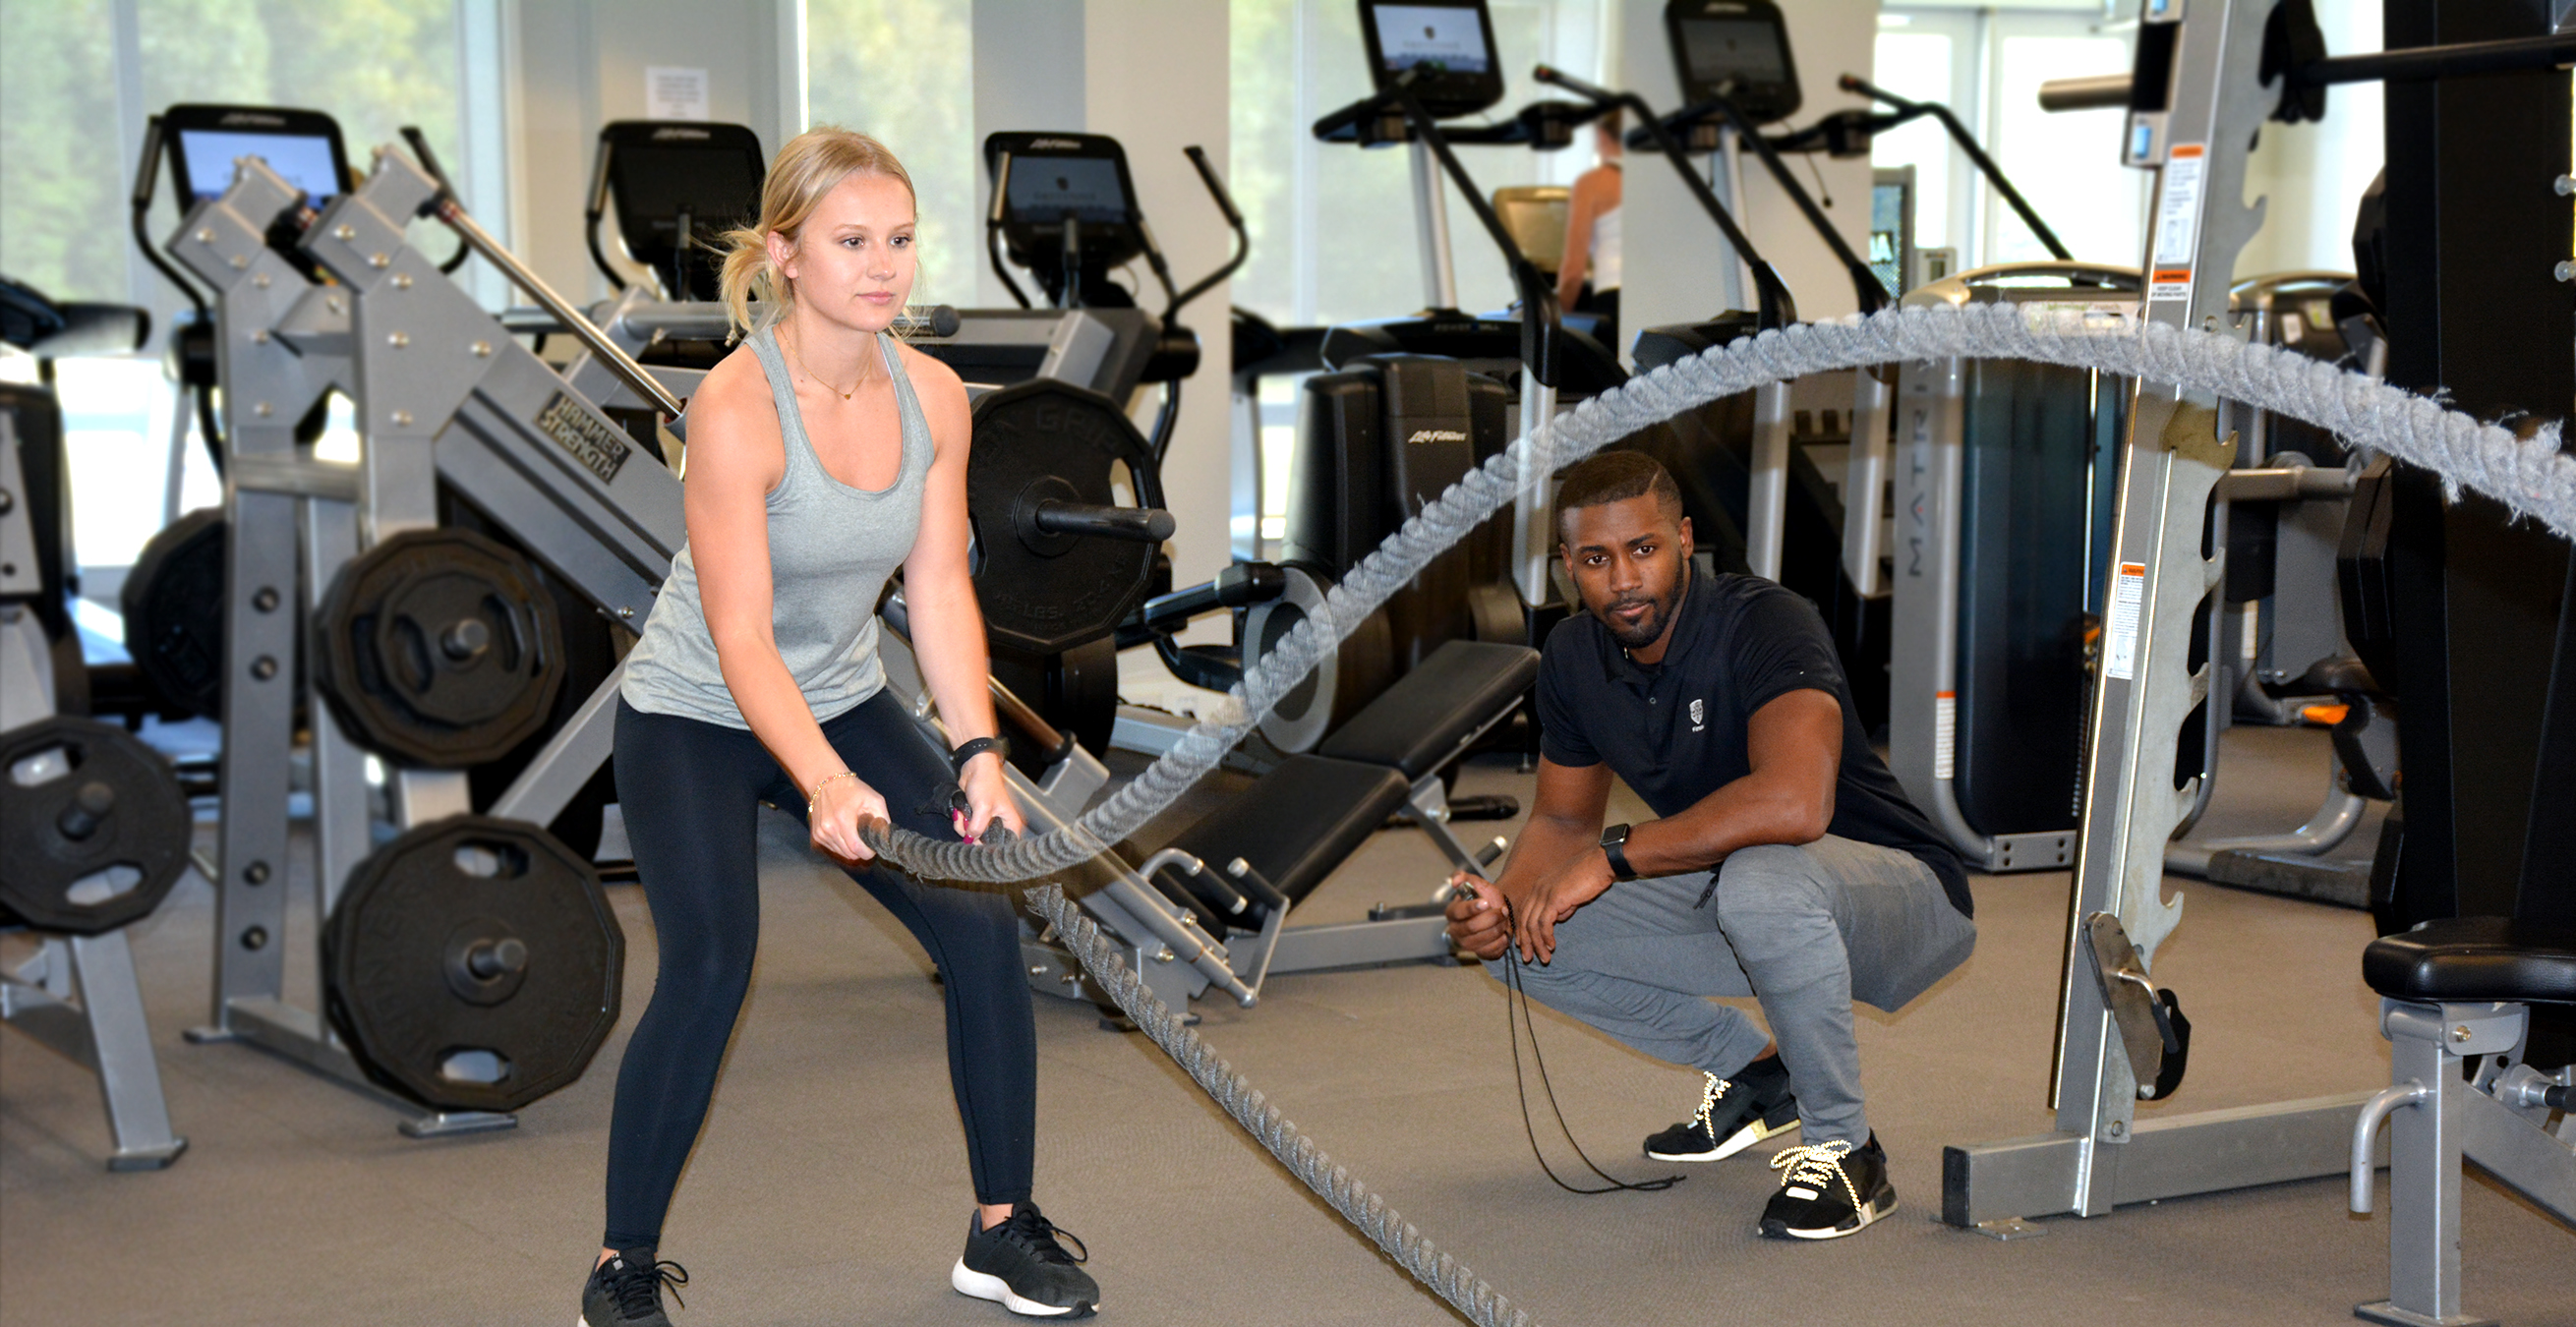 Fitness Training at Greystone - woman rope training with male trainer